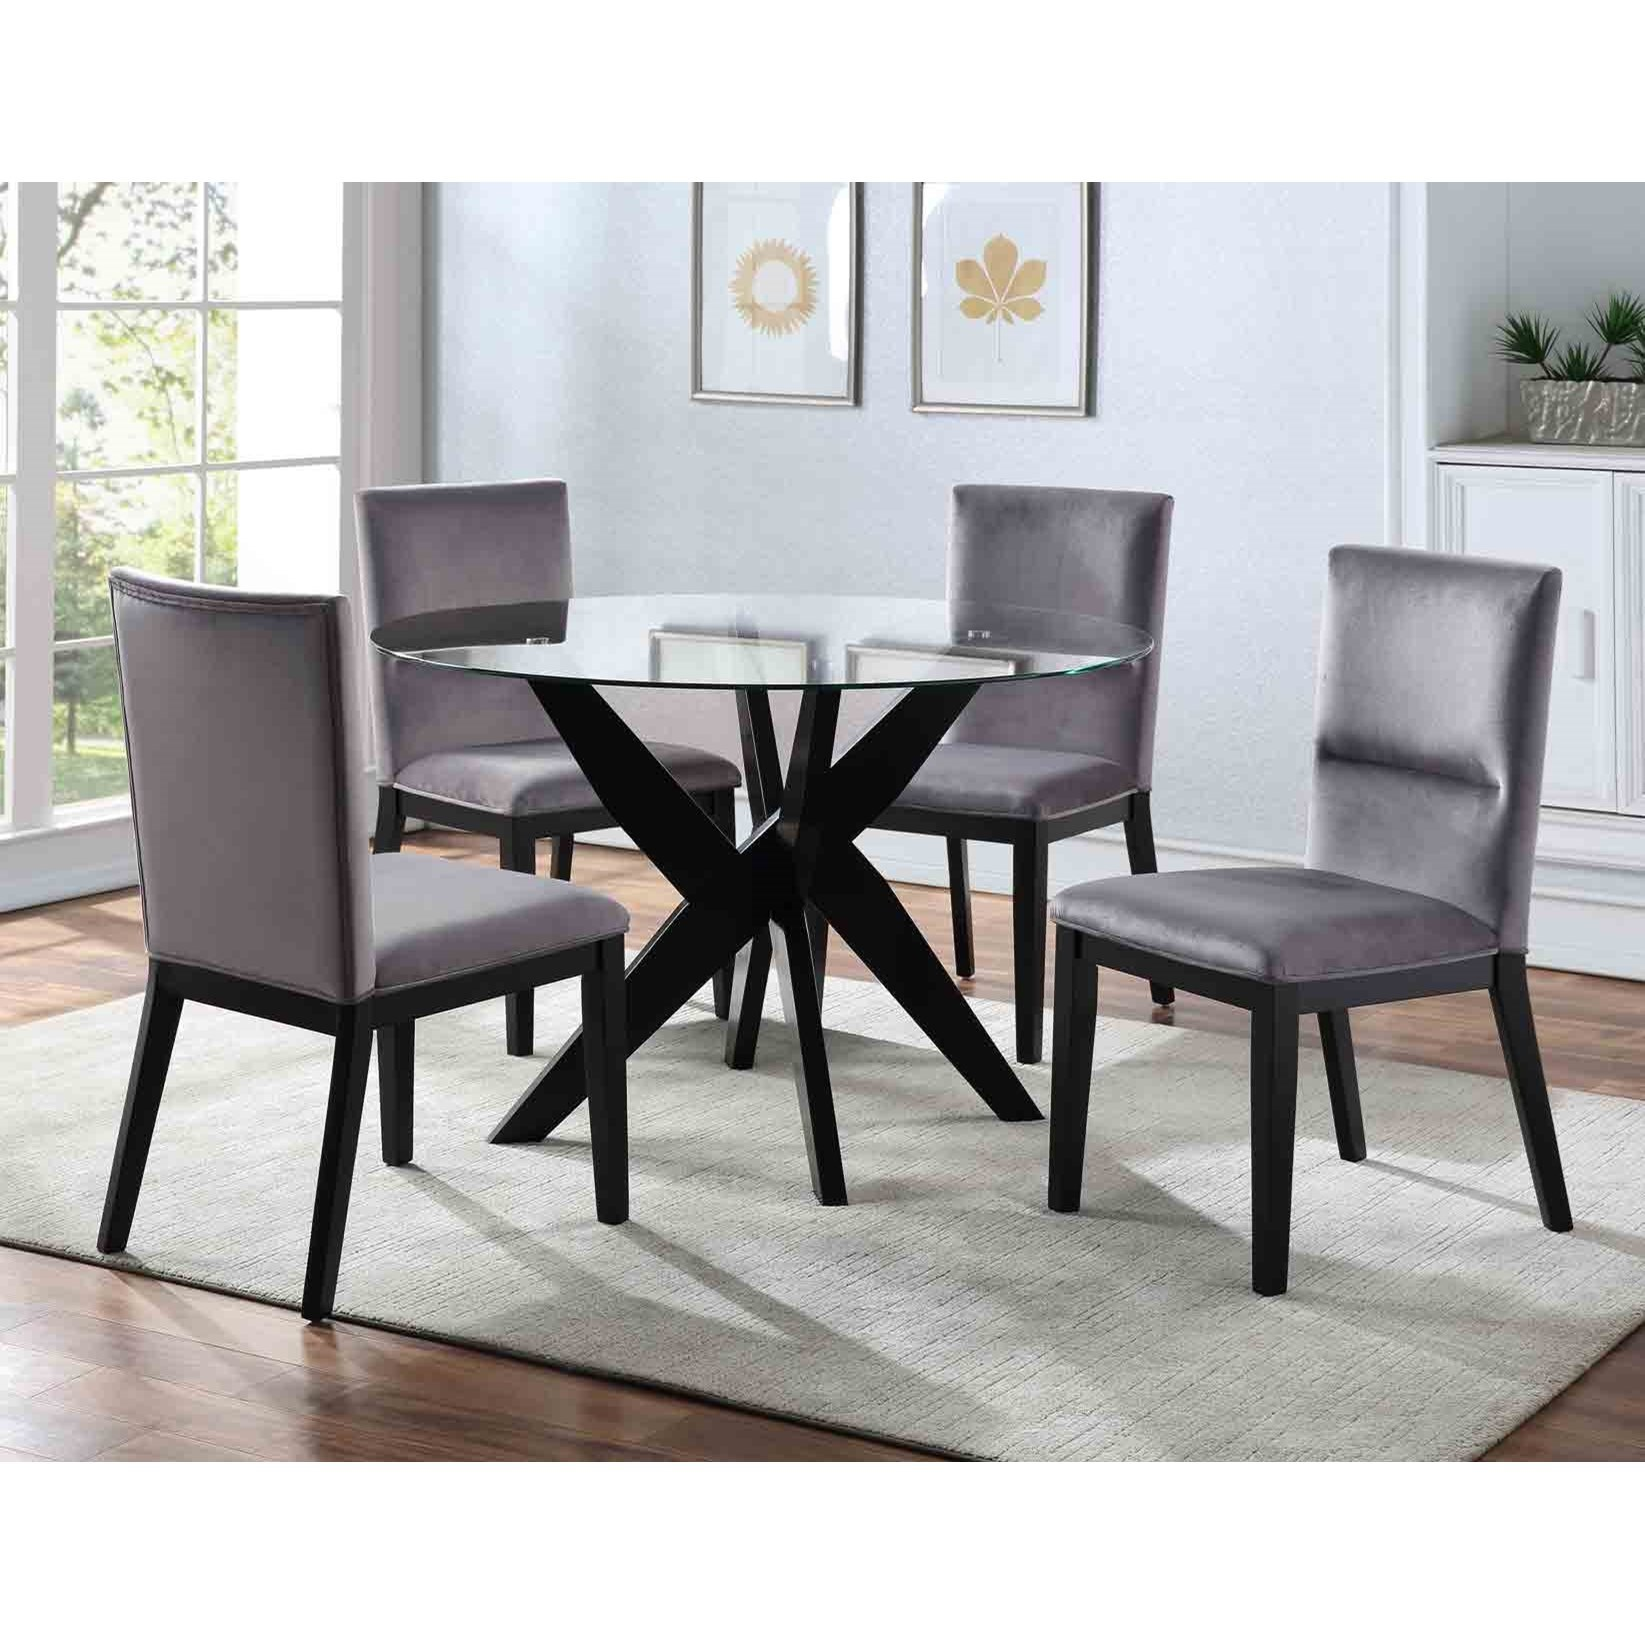 Amalie 5-Piece Dining Set  by Steve Silver at Northeast Factory Direct